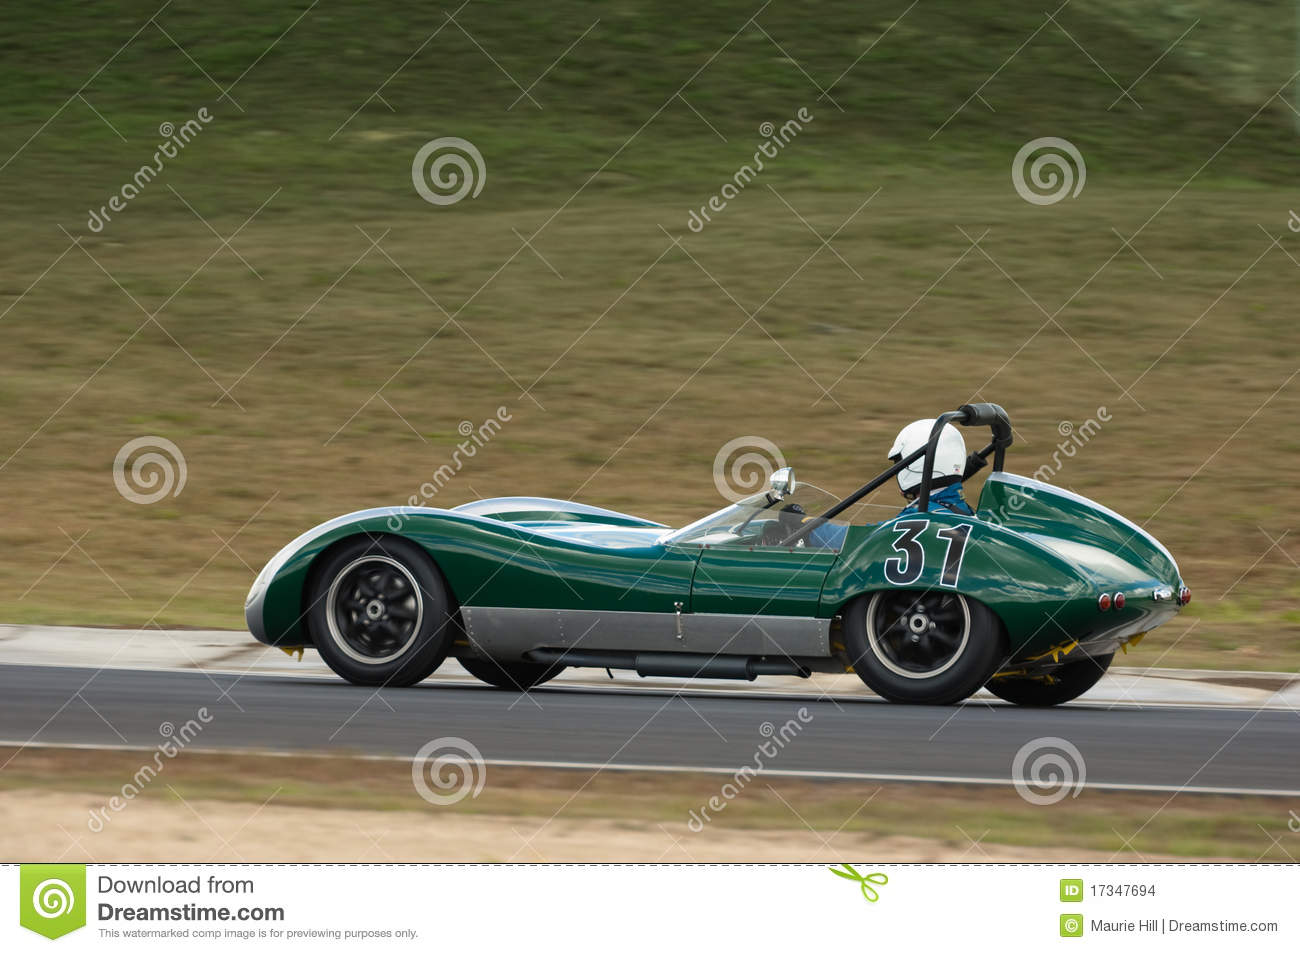 Classic Lola Mk1 Racing Car At Speed Editorial Stock Image - Image ...